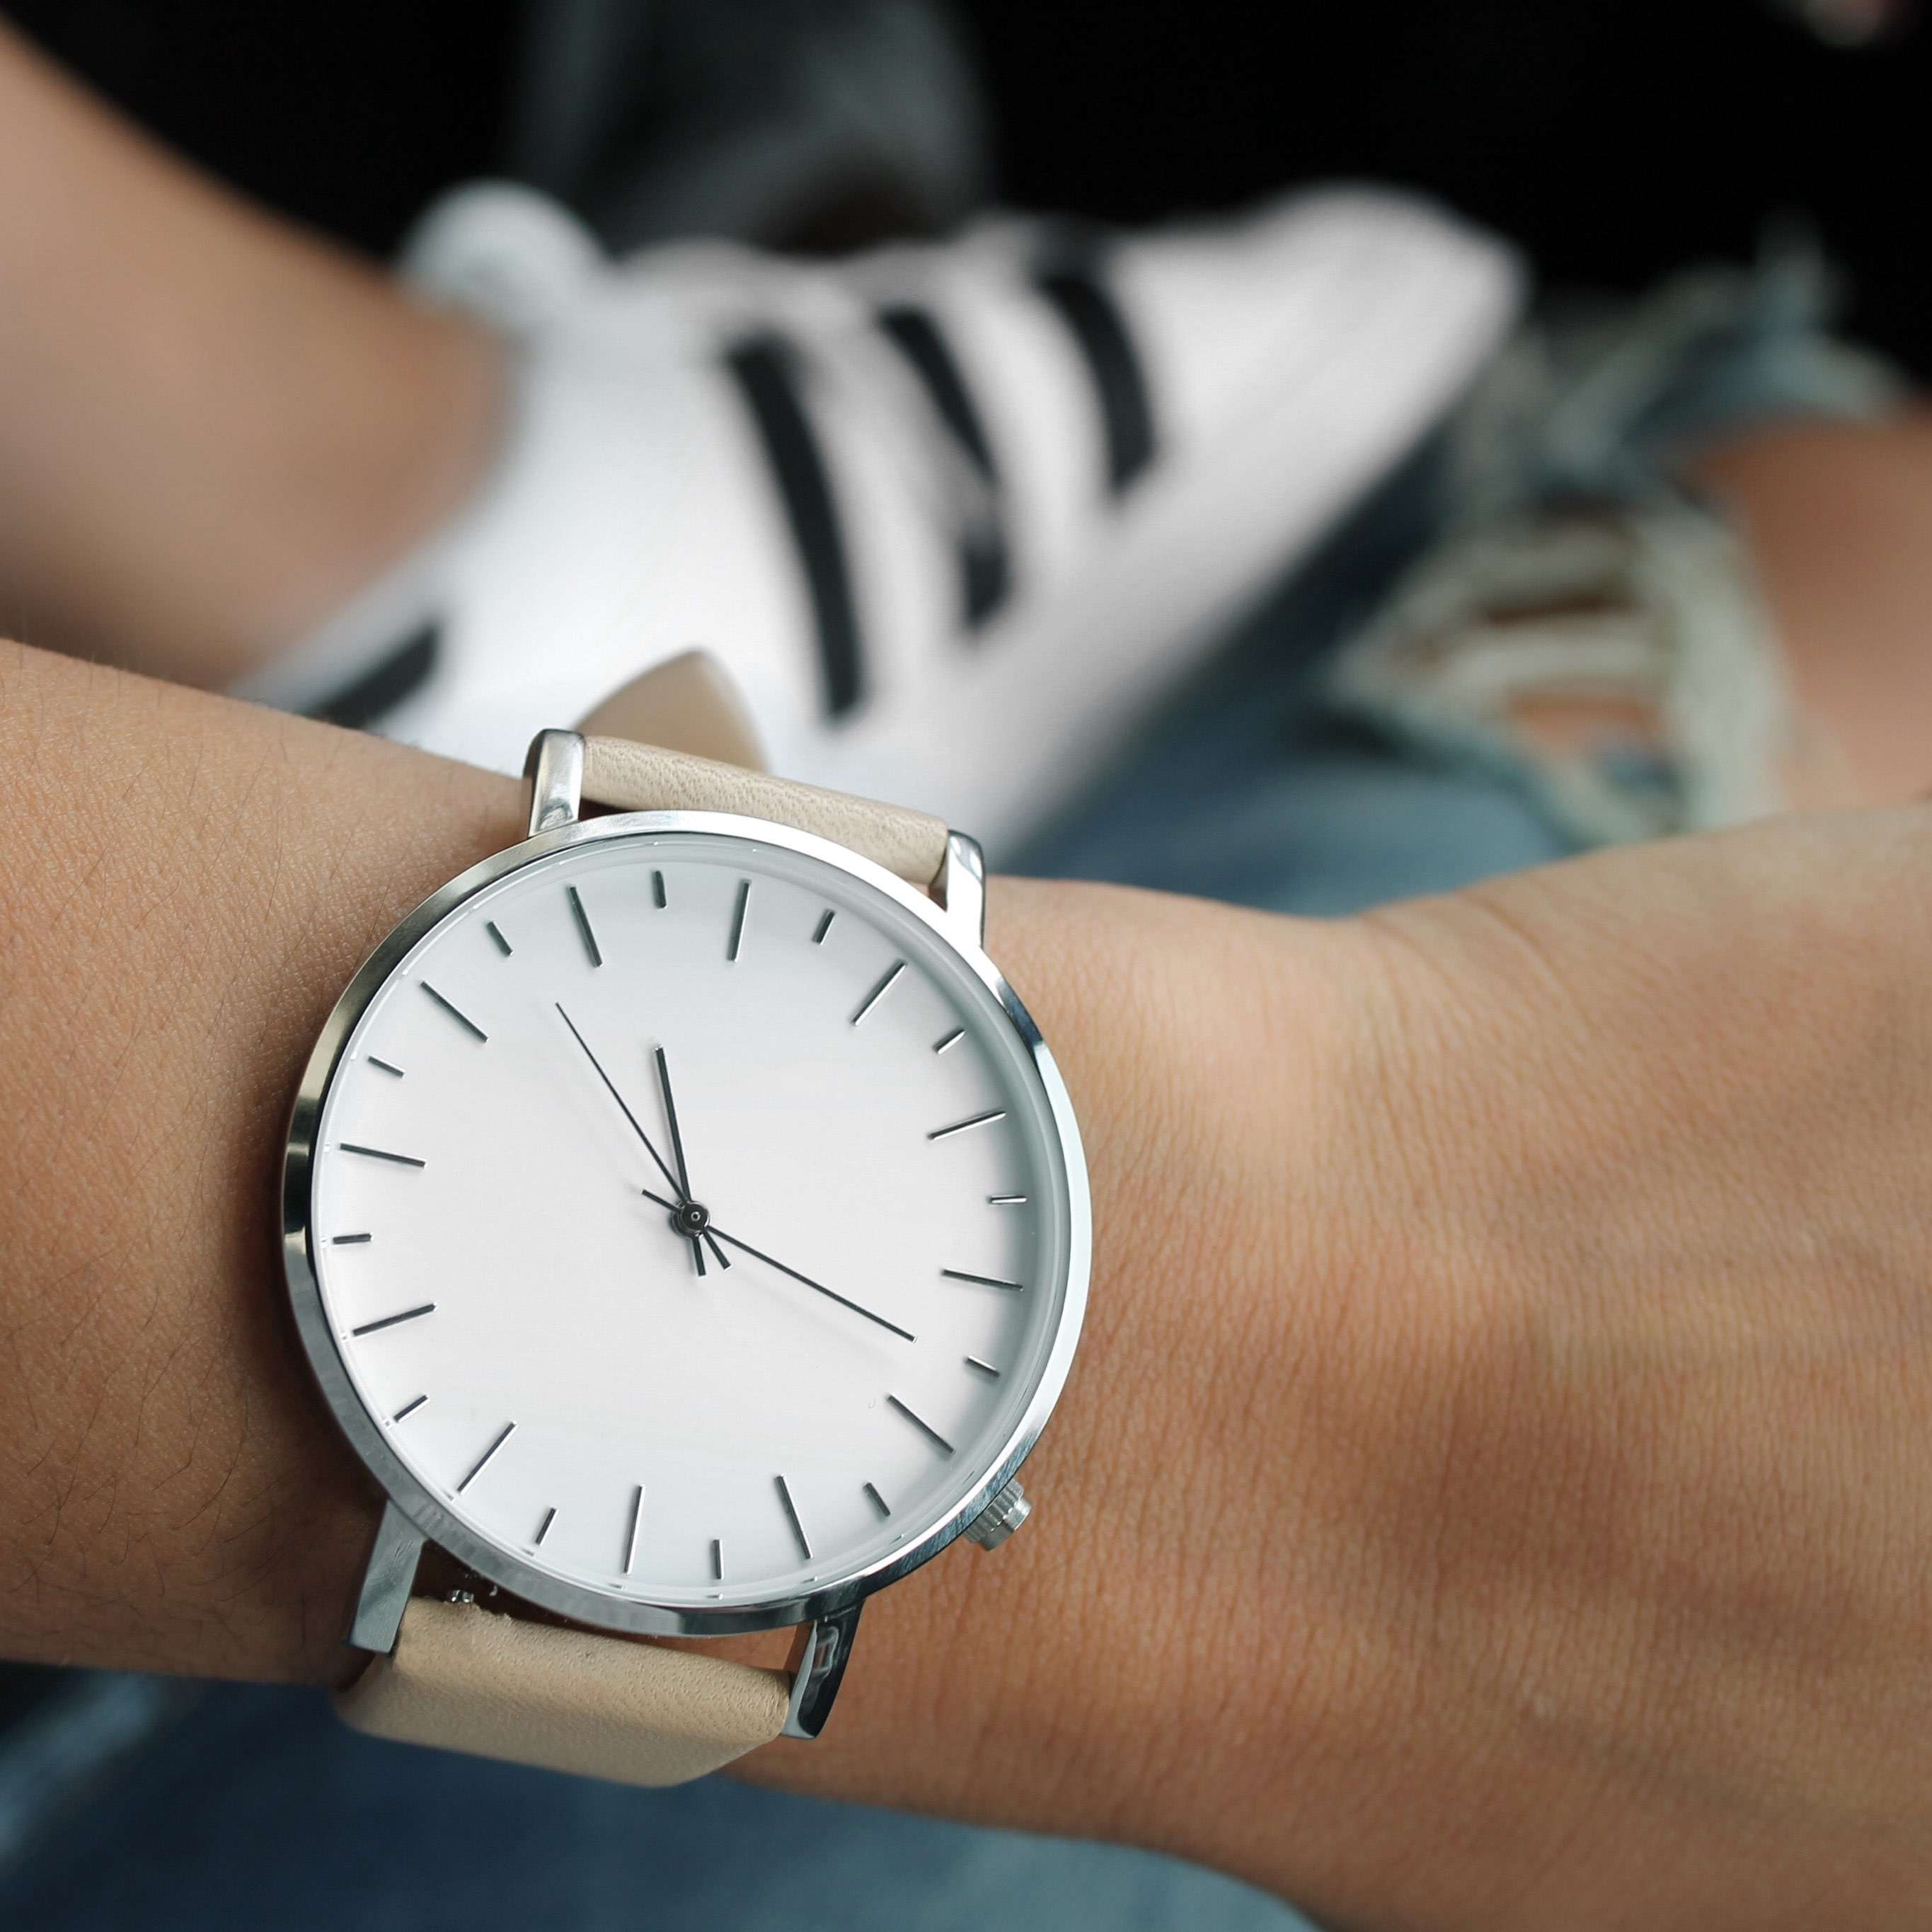 Watch material carbon